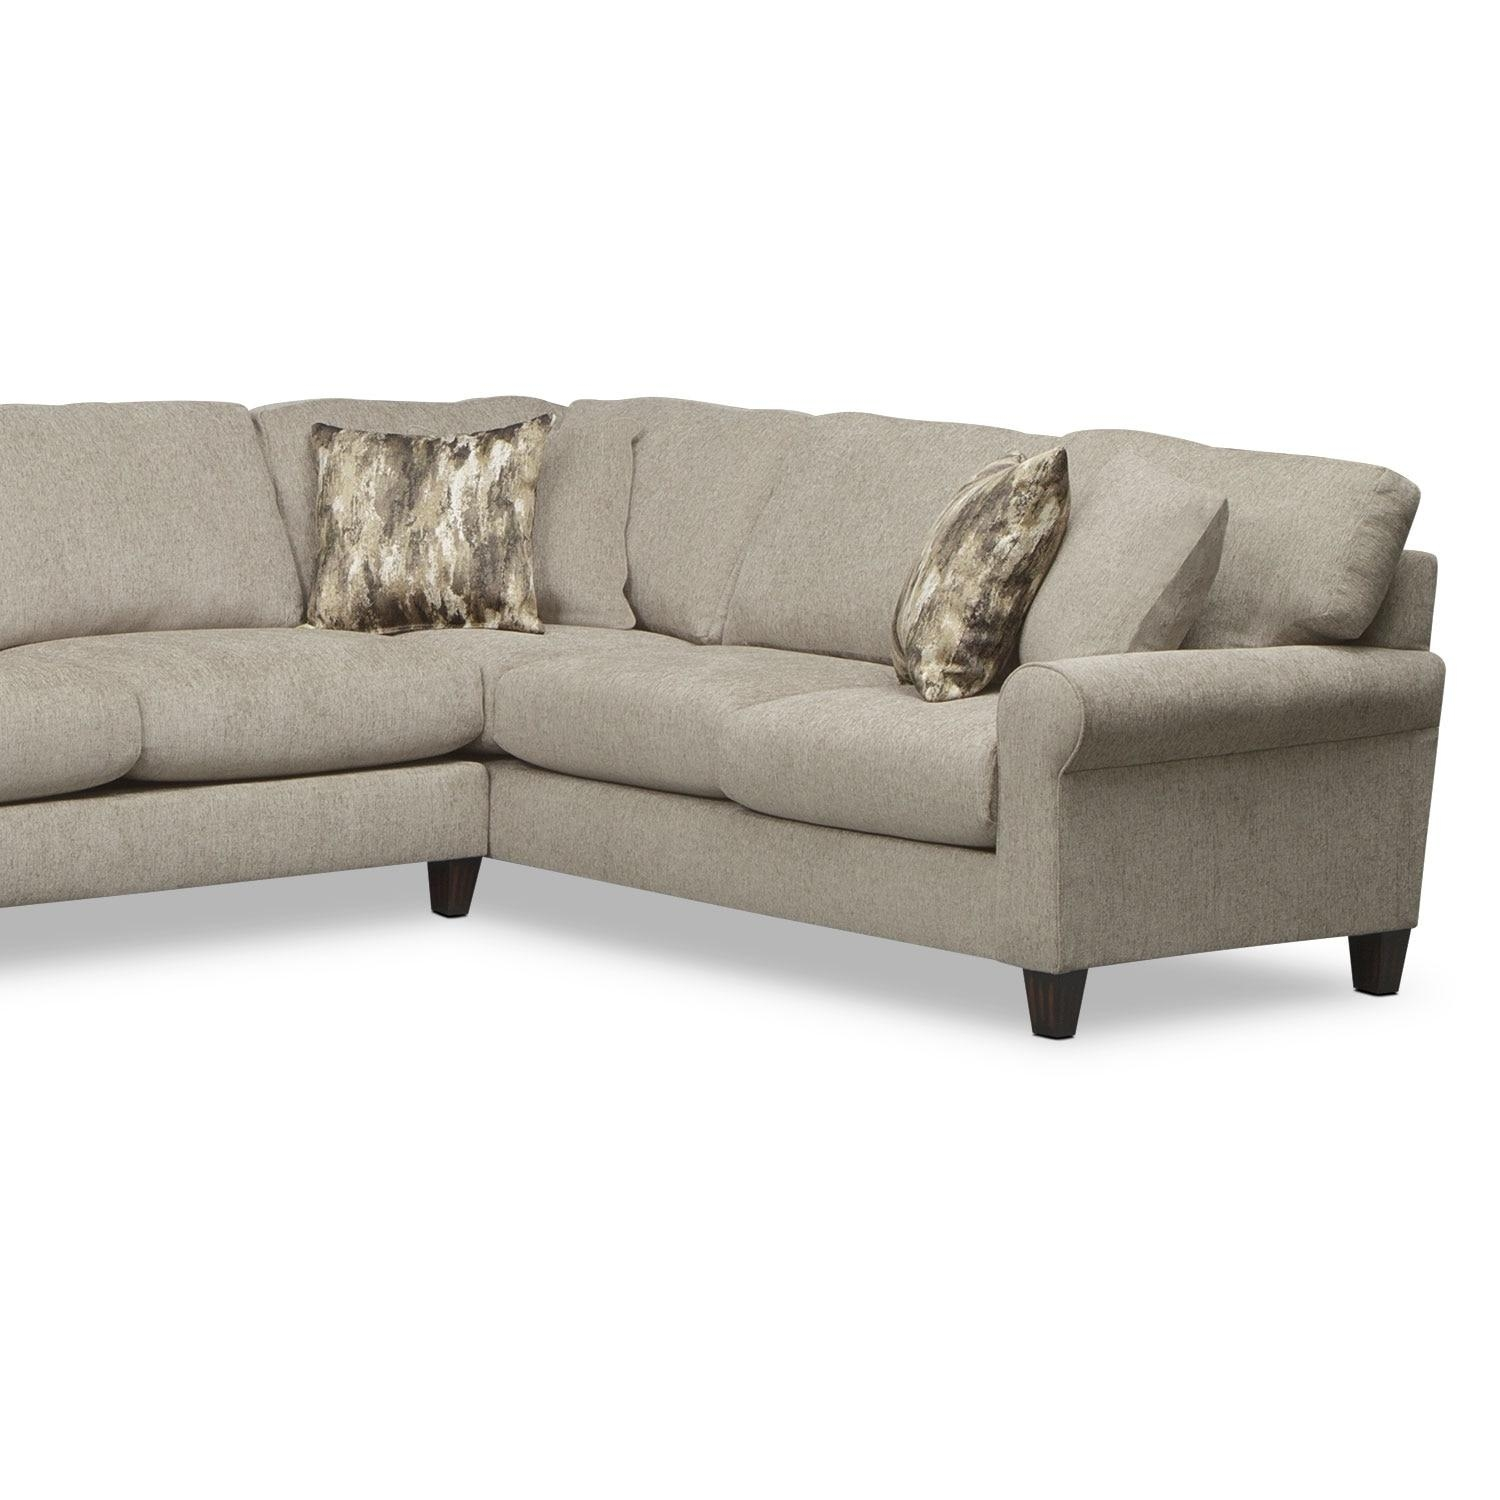 Karma 3 Piece Sectional With Left Facing Cuddler – Mink | Value Within Sectional Cuddler (Image 12 of 20)